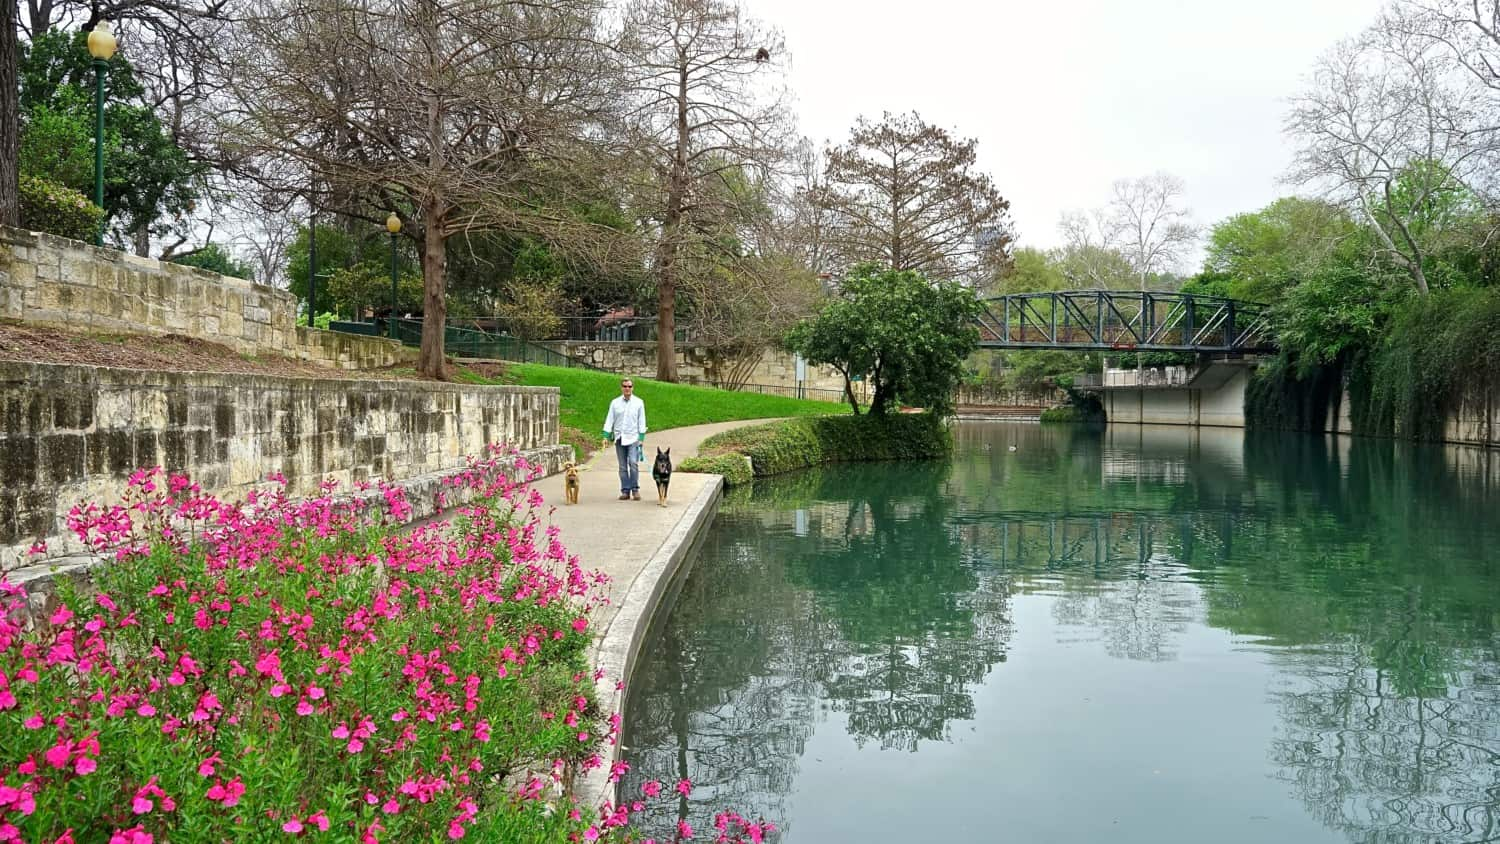 Texas' Top Pet Friendly Attraction: The San Antonio River Walk | GoPetFriendly.com